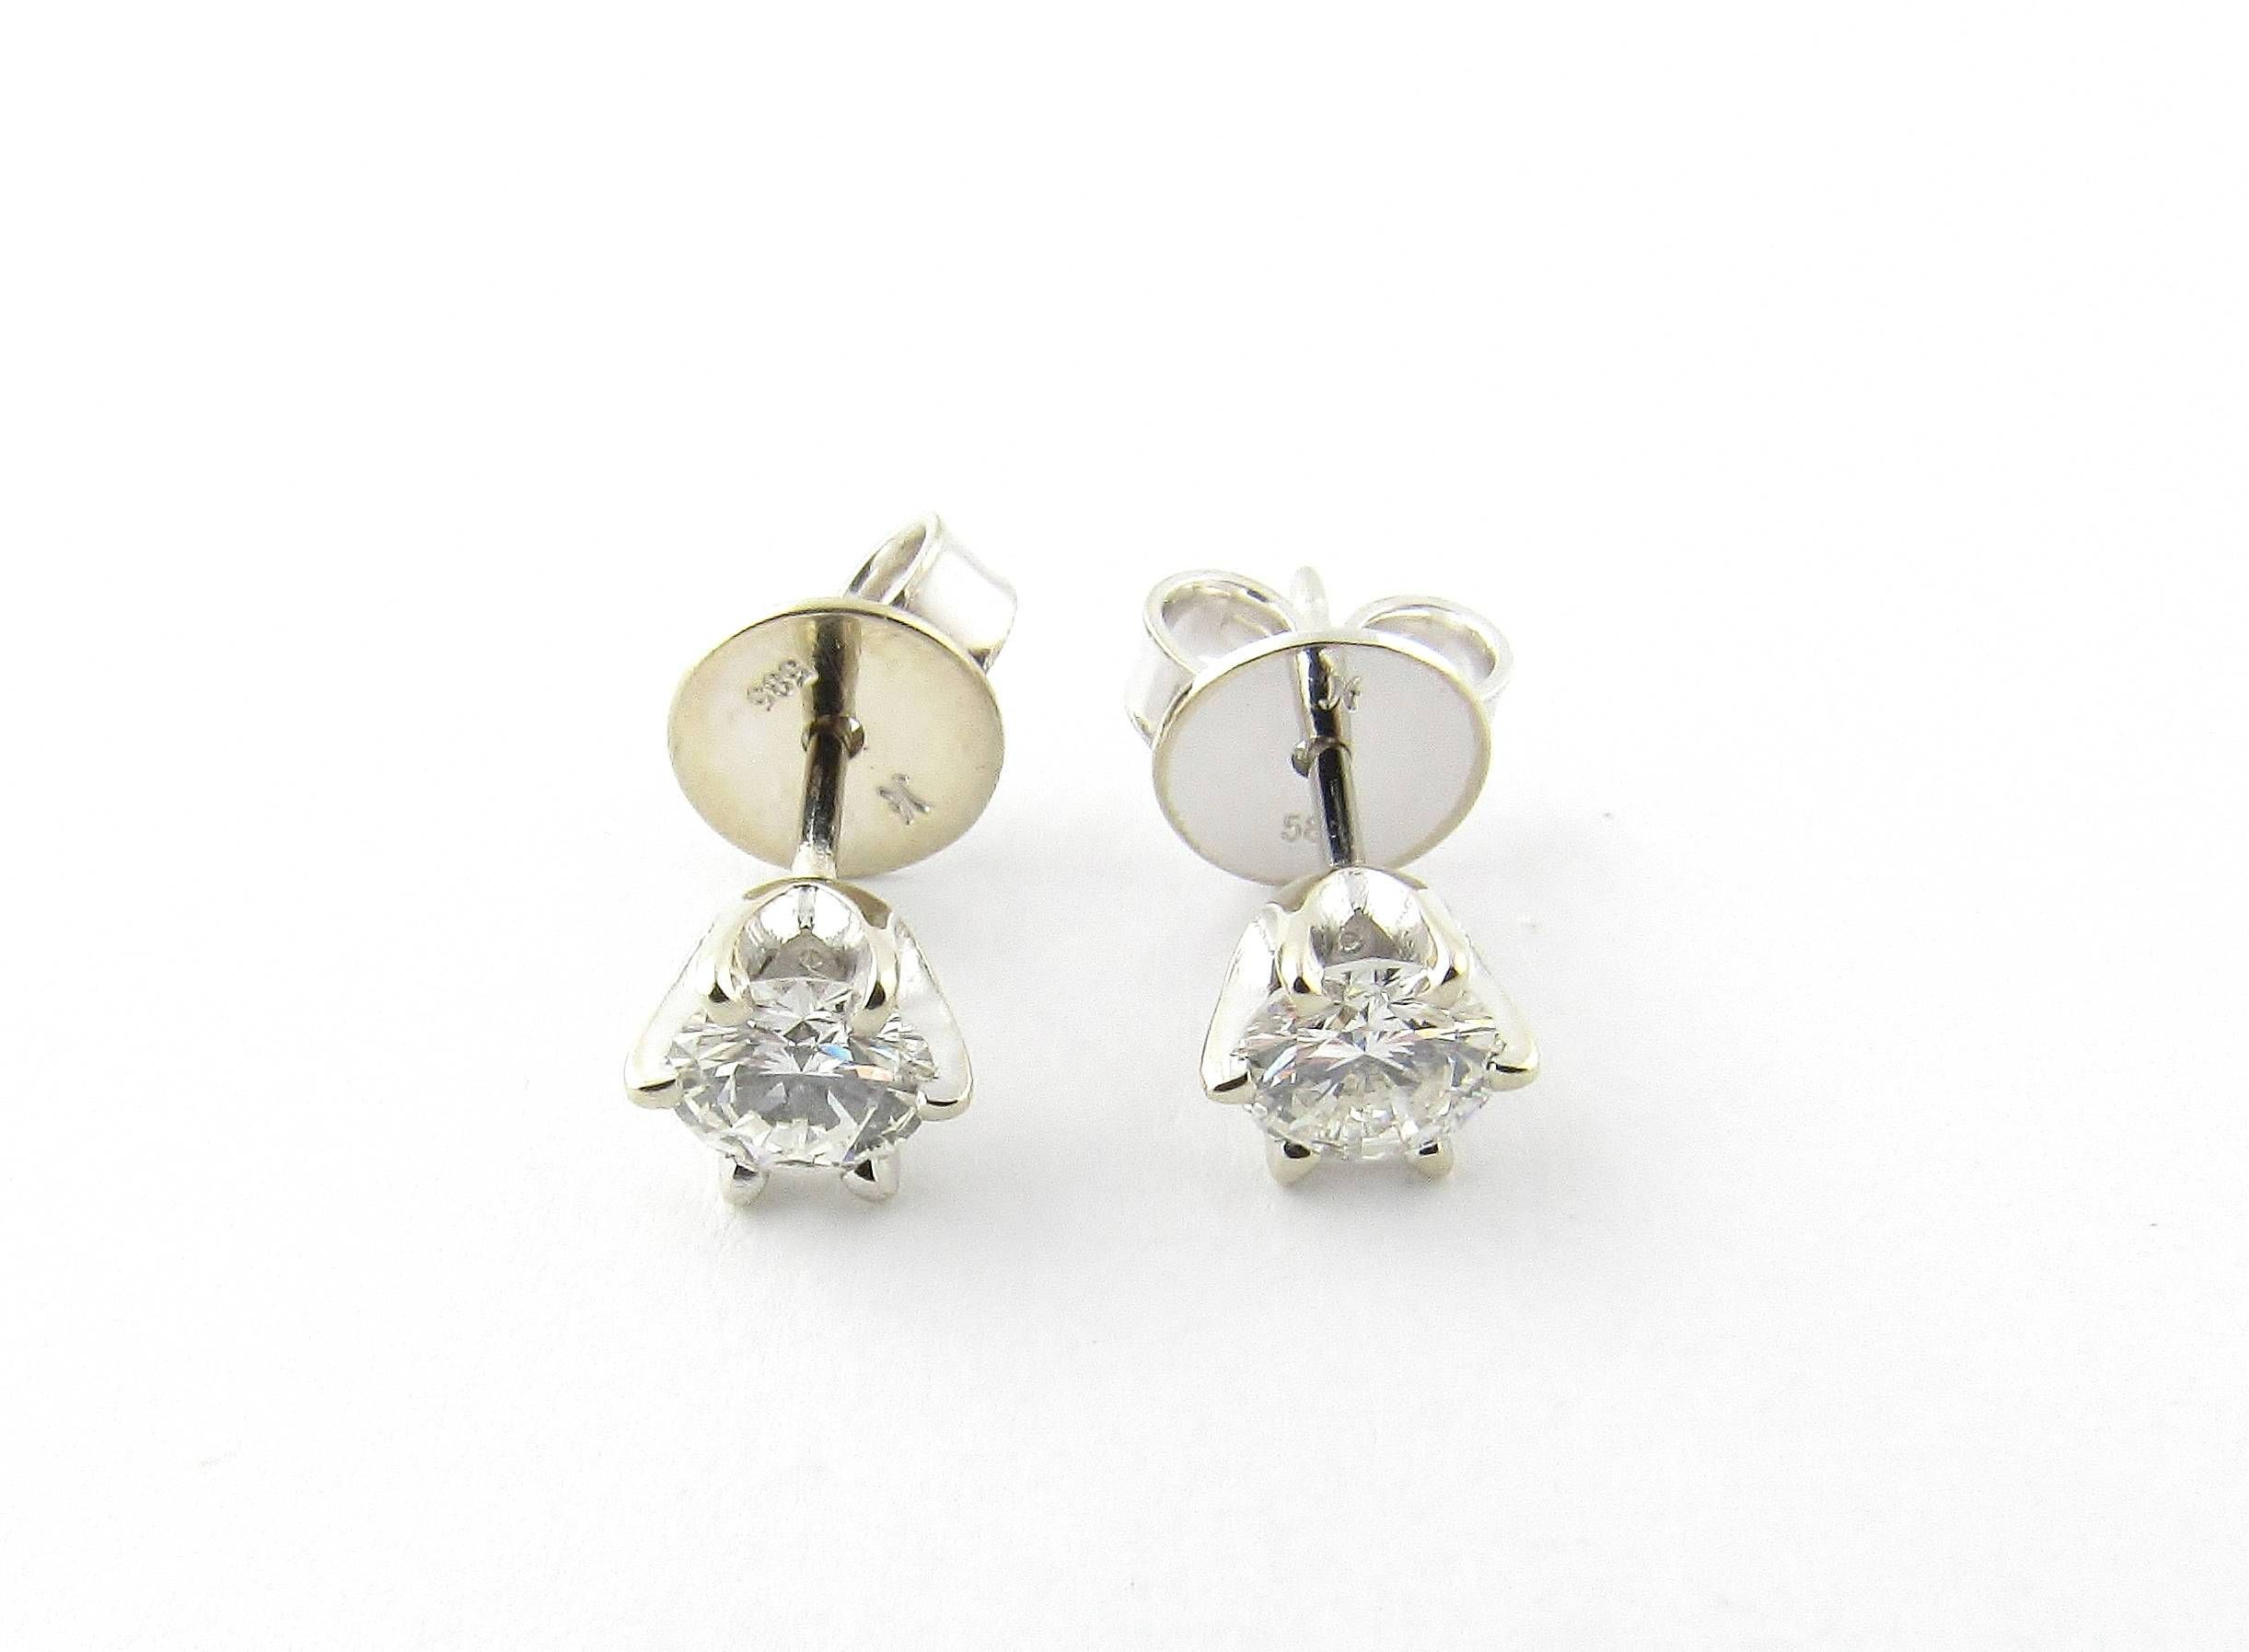 cut earring fetheray products hand stud vintage studs diamond antique blingtastic earrings